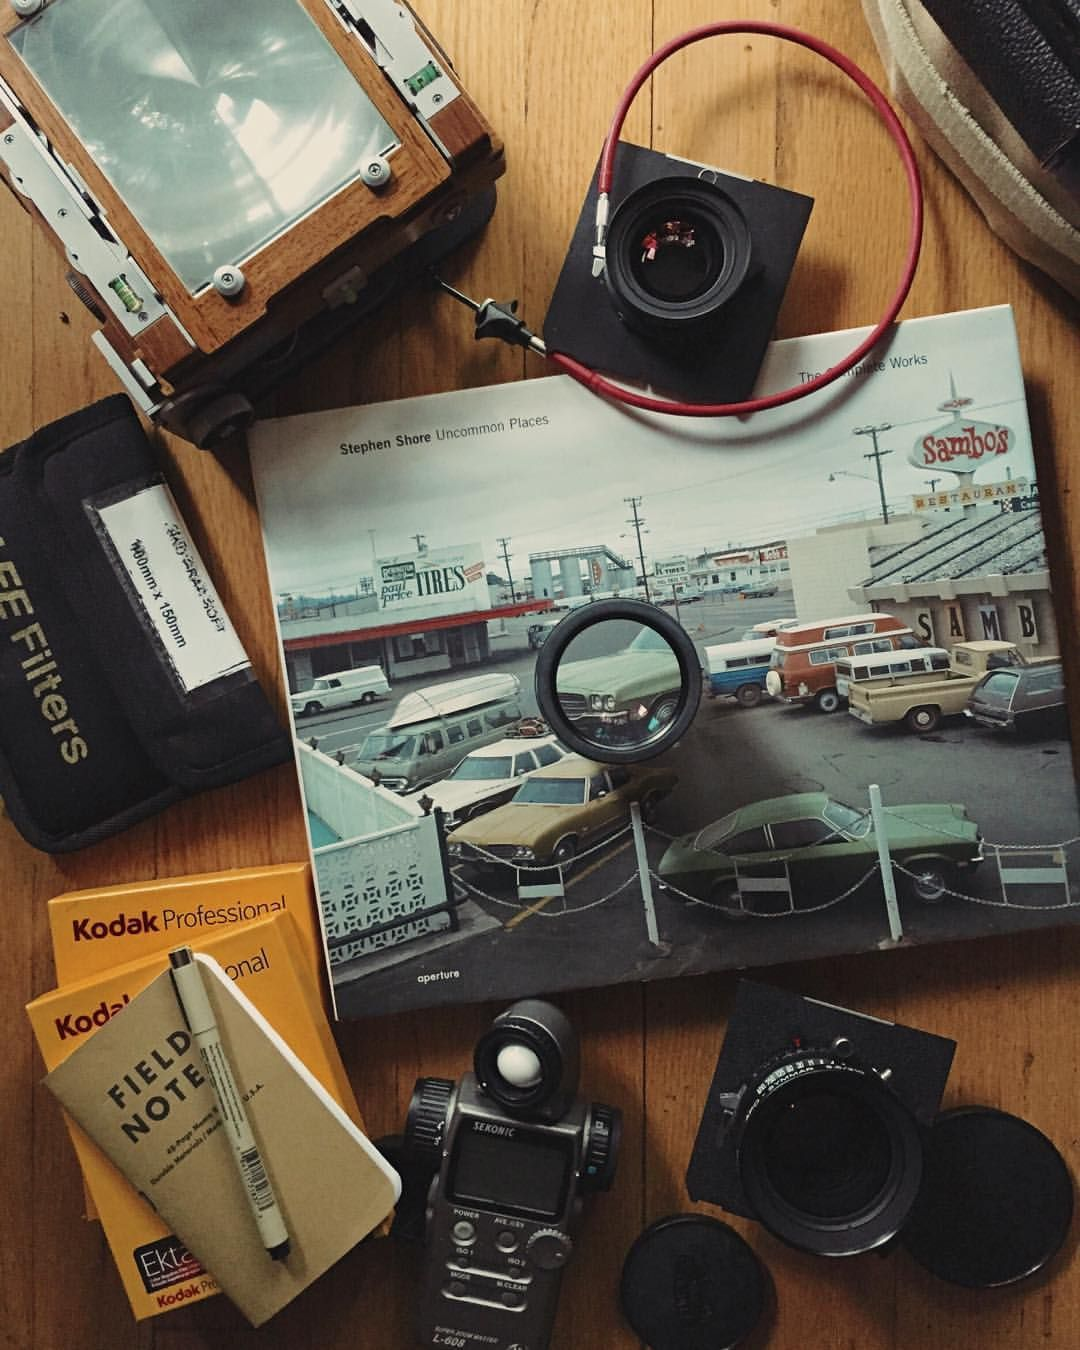 tapanddye:  Sunday essentials. Some pre-shoot reading/inspiration with a classic piece of large format goodness. #legacyshooters